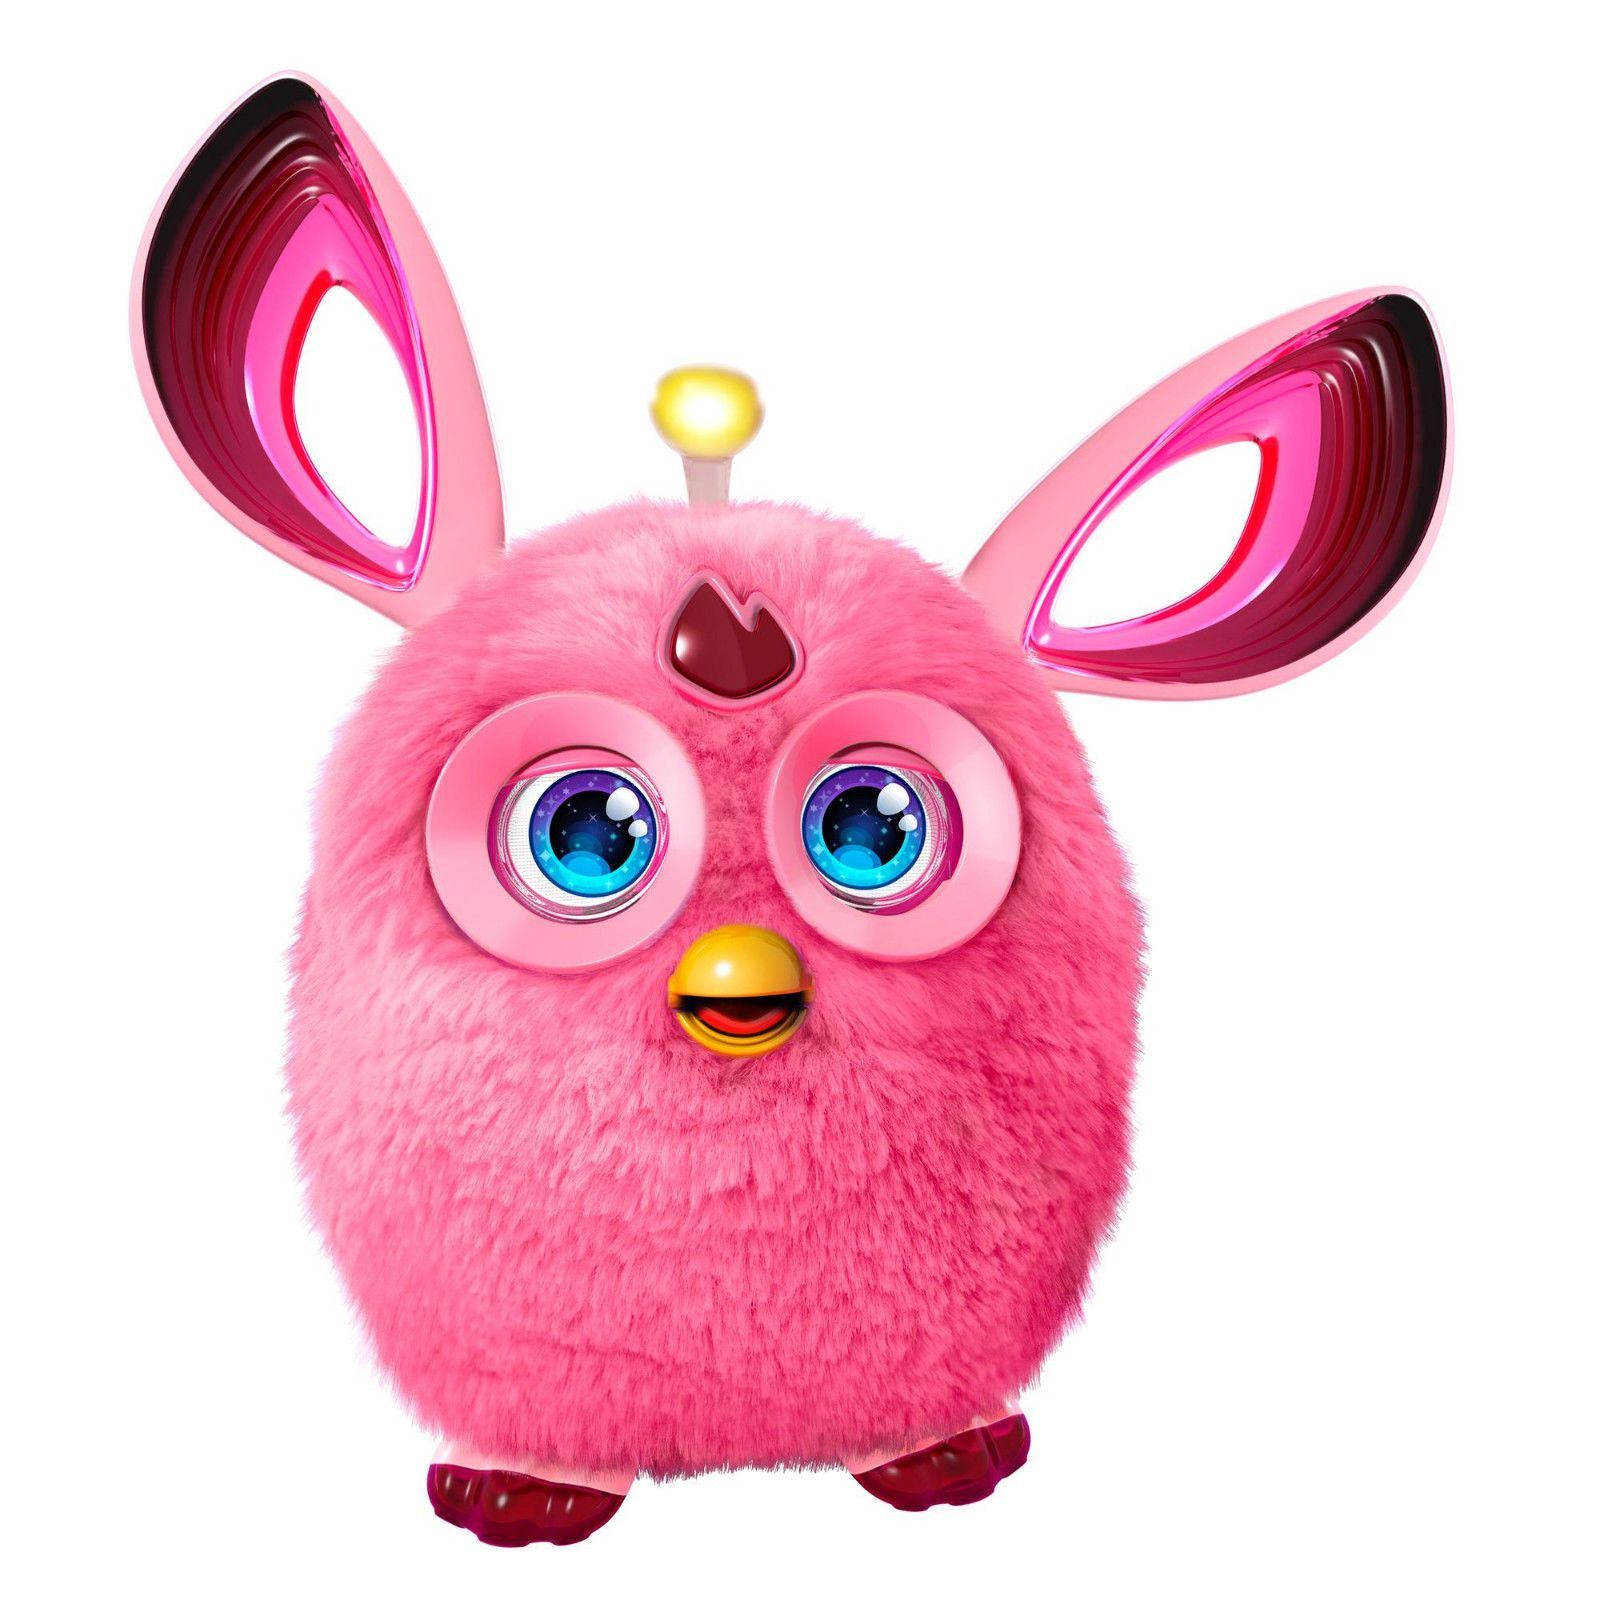 Furby 1083: Hasbro Furby Connect Pink - New B6086 -> BUY IT NOW ONLY: $53.95 on eBay!